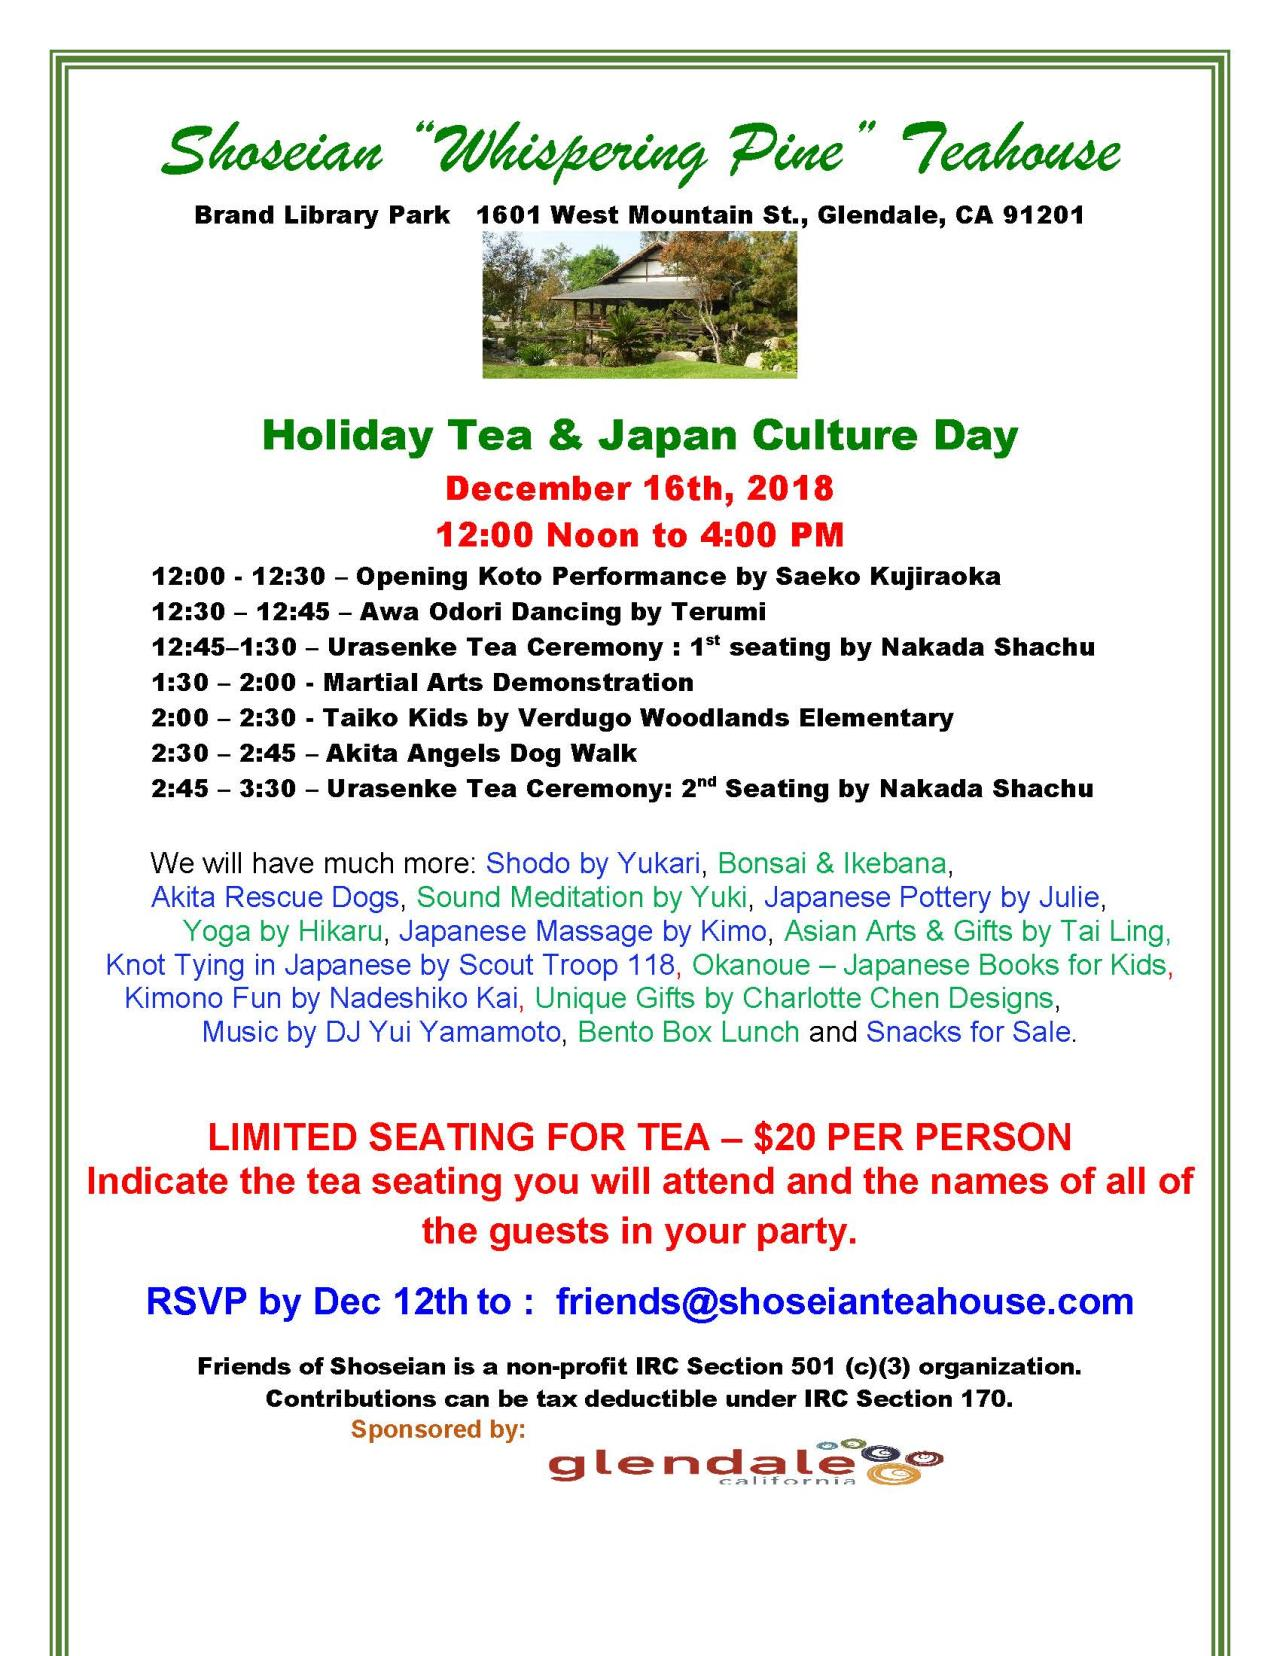 Shoseian Teahouse Holiday Tea flyer 12-16-2018 V3